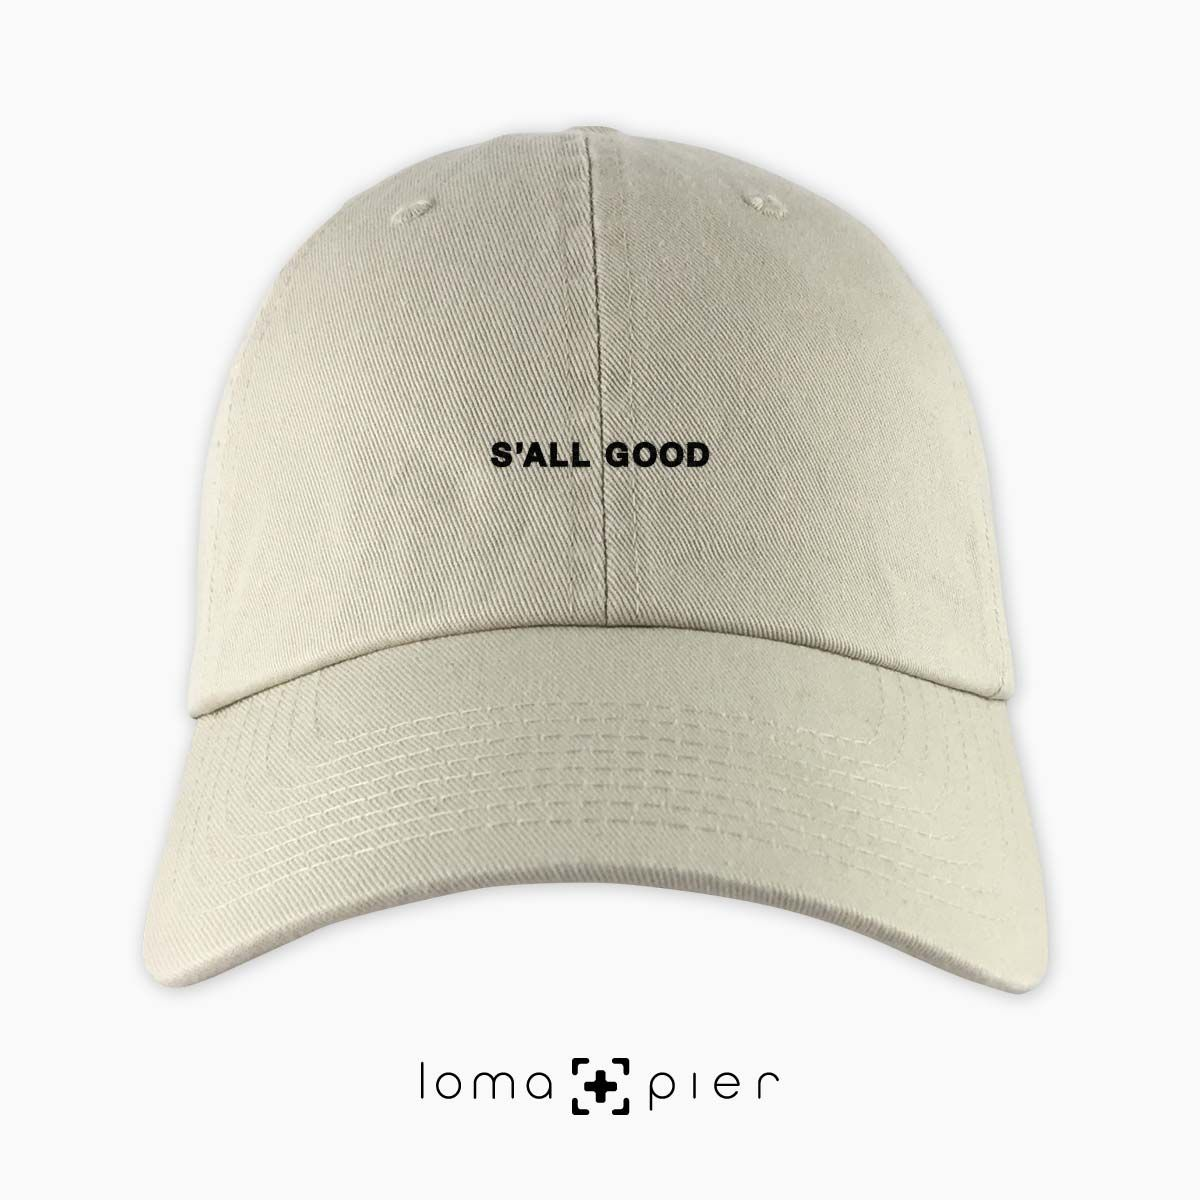 S ALL GOOD typography embroidered on a khaki unstructured dad hat with  white thread by loma+pier hat store made in the USA cc96b54a5a4